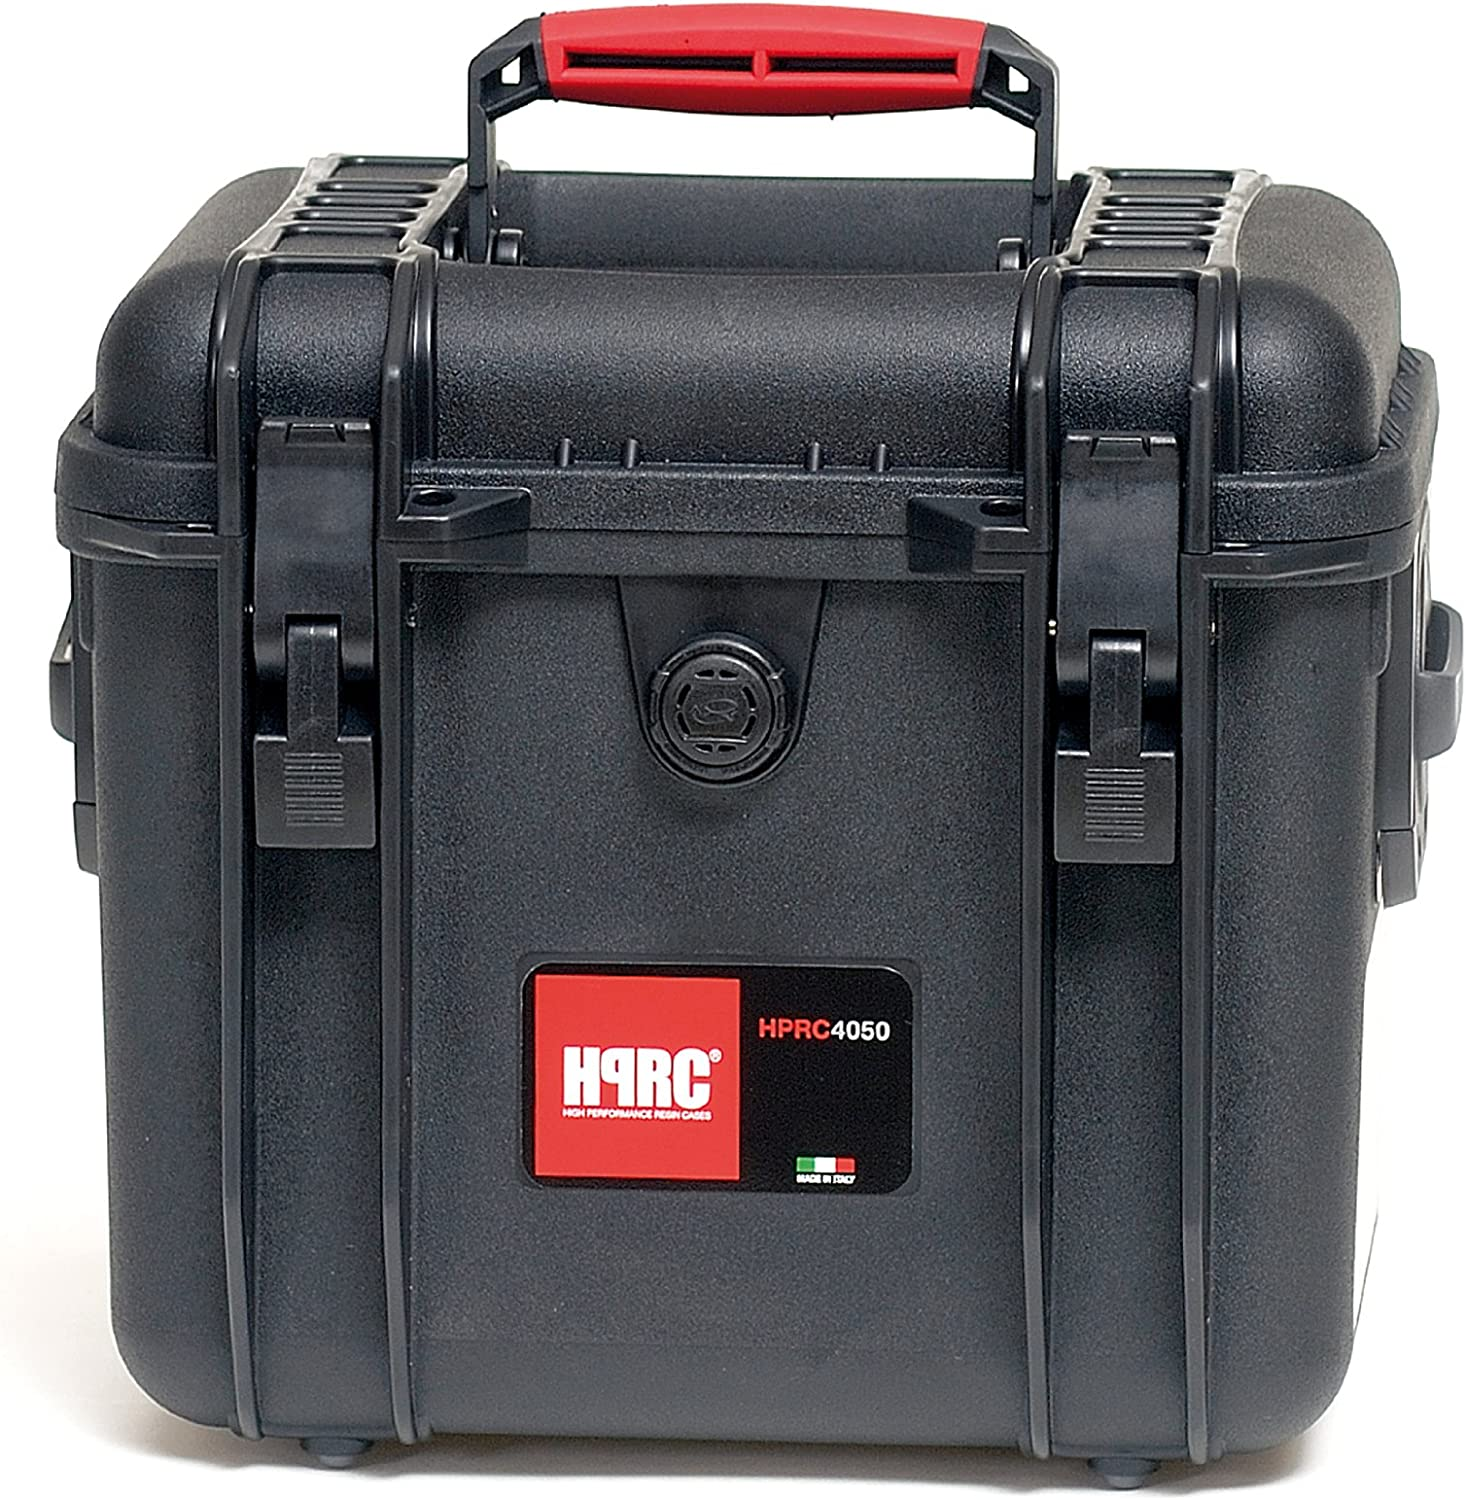 HPRC 4050E Empty Hard Case Black